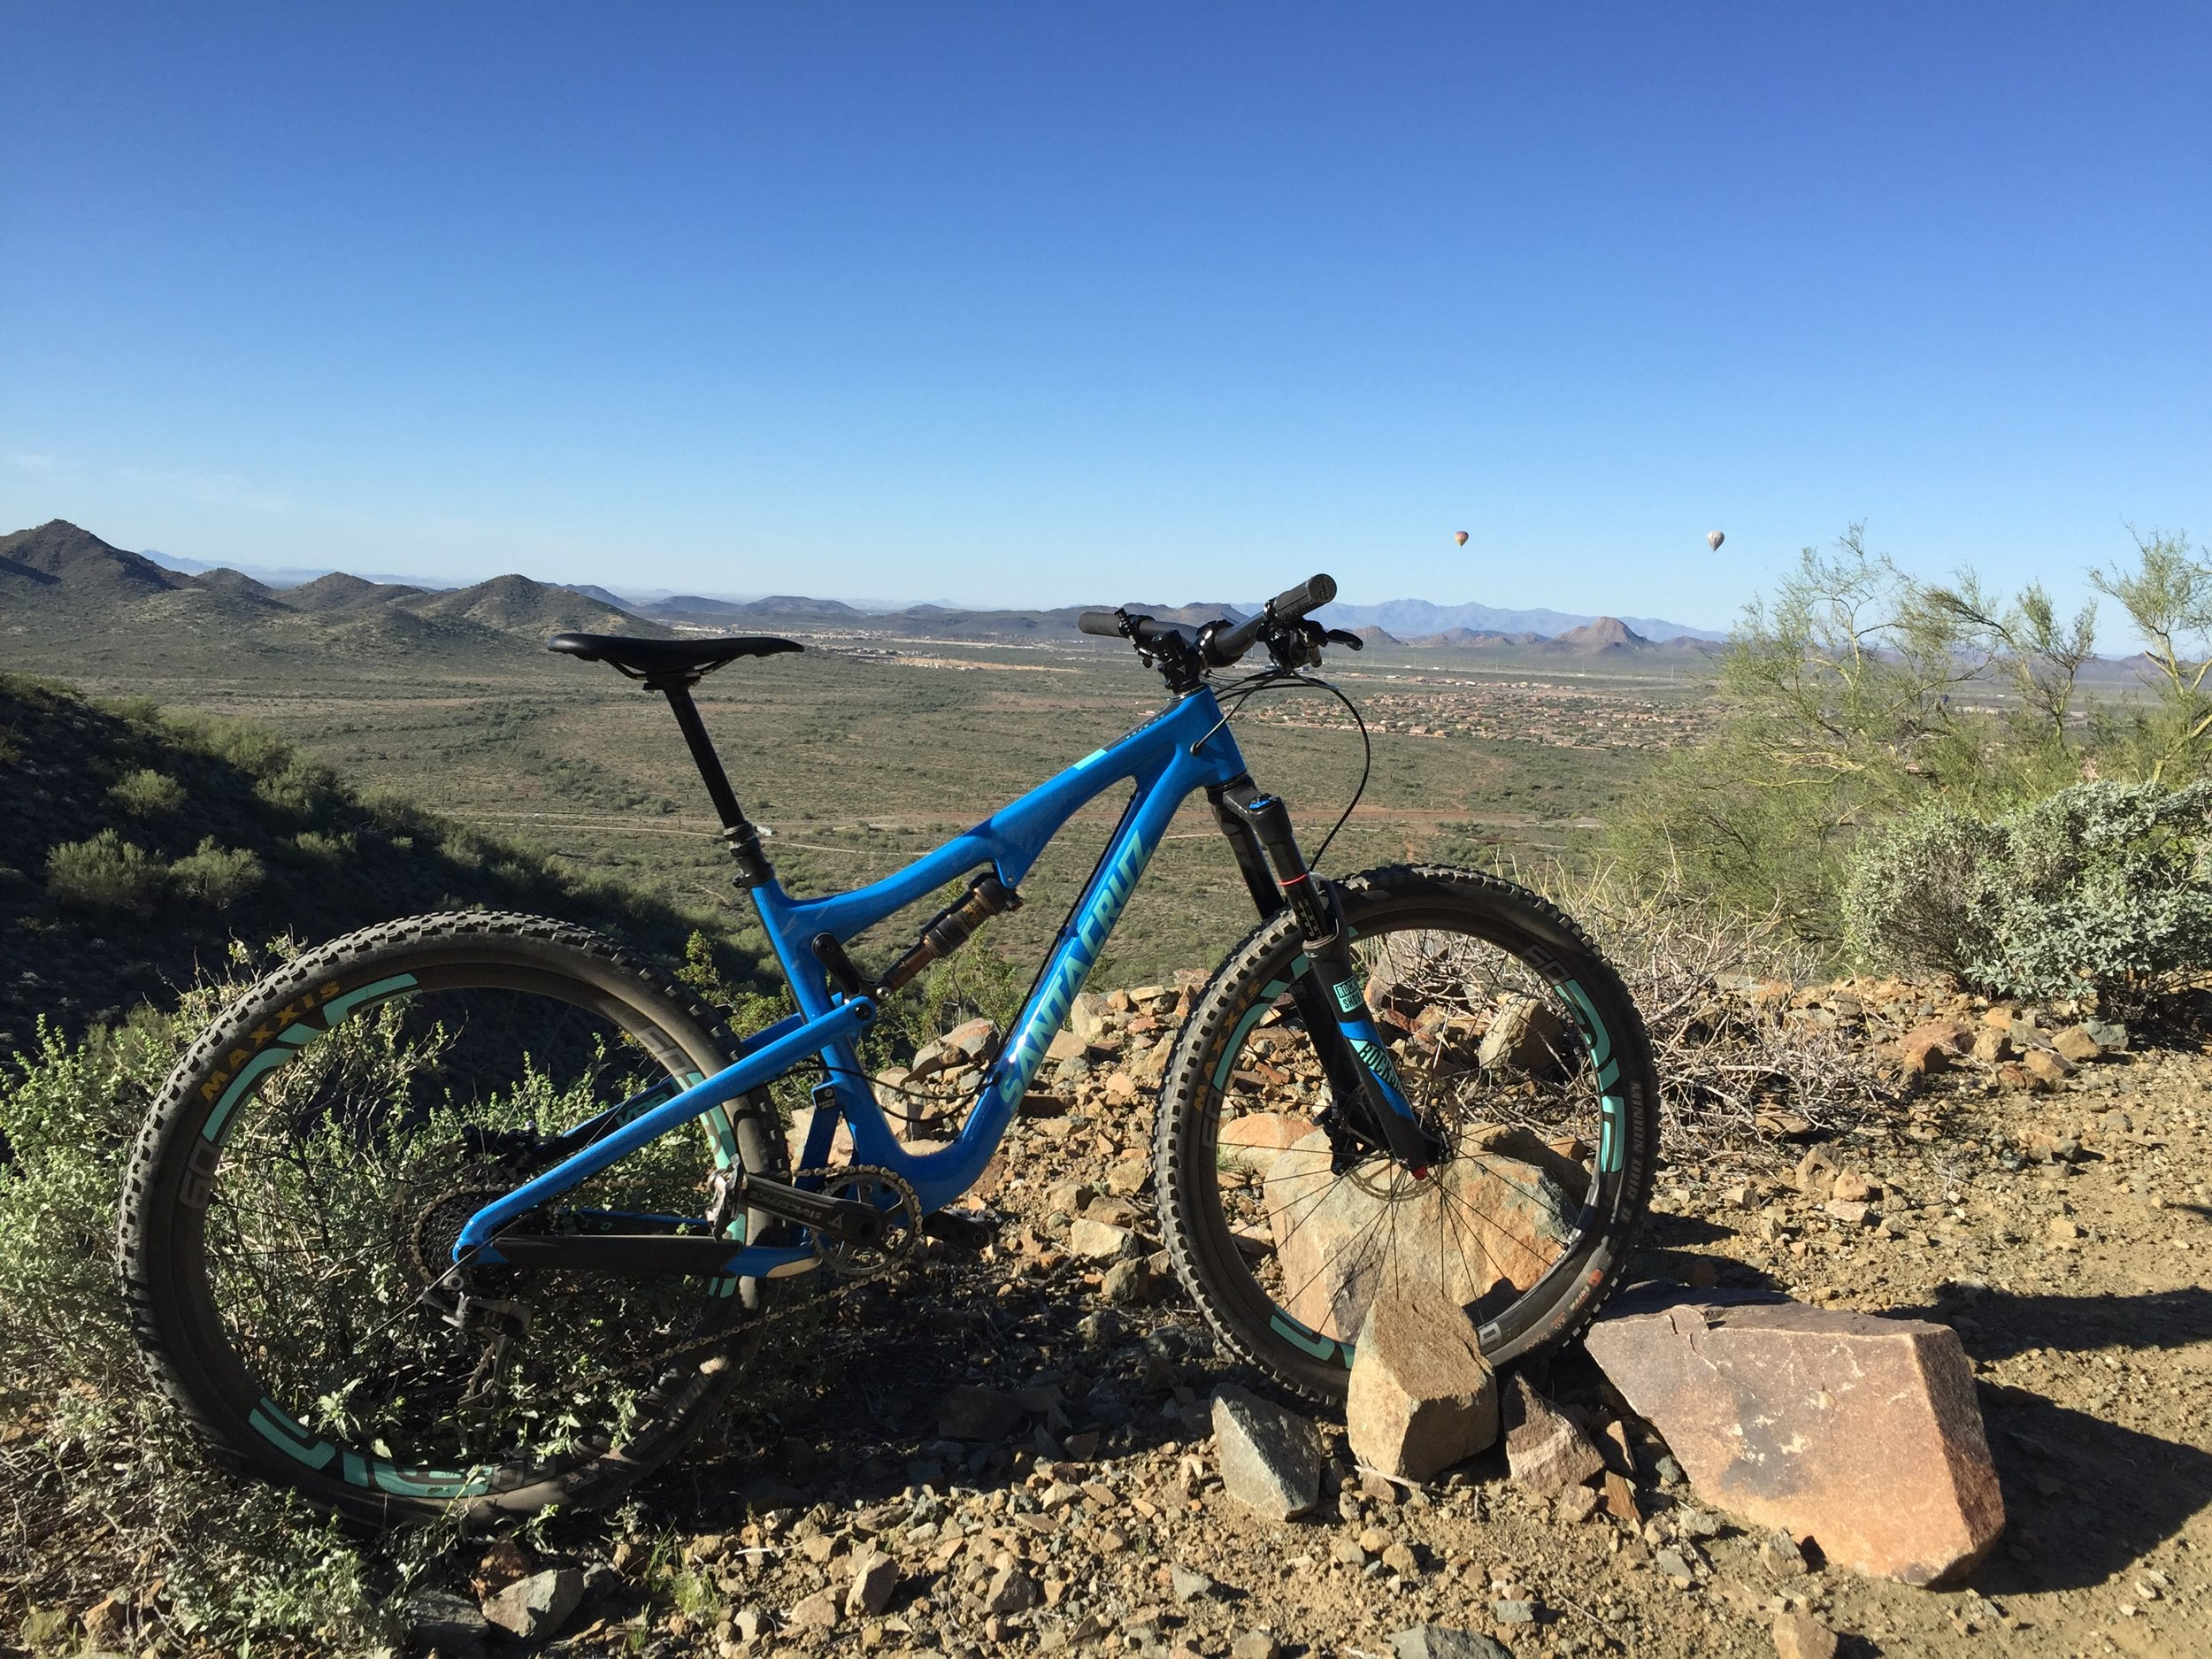 The Santa Cruz 5010 is a great bike, that I just couldn't get myself to buy.